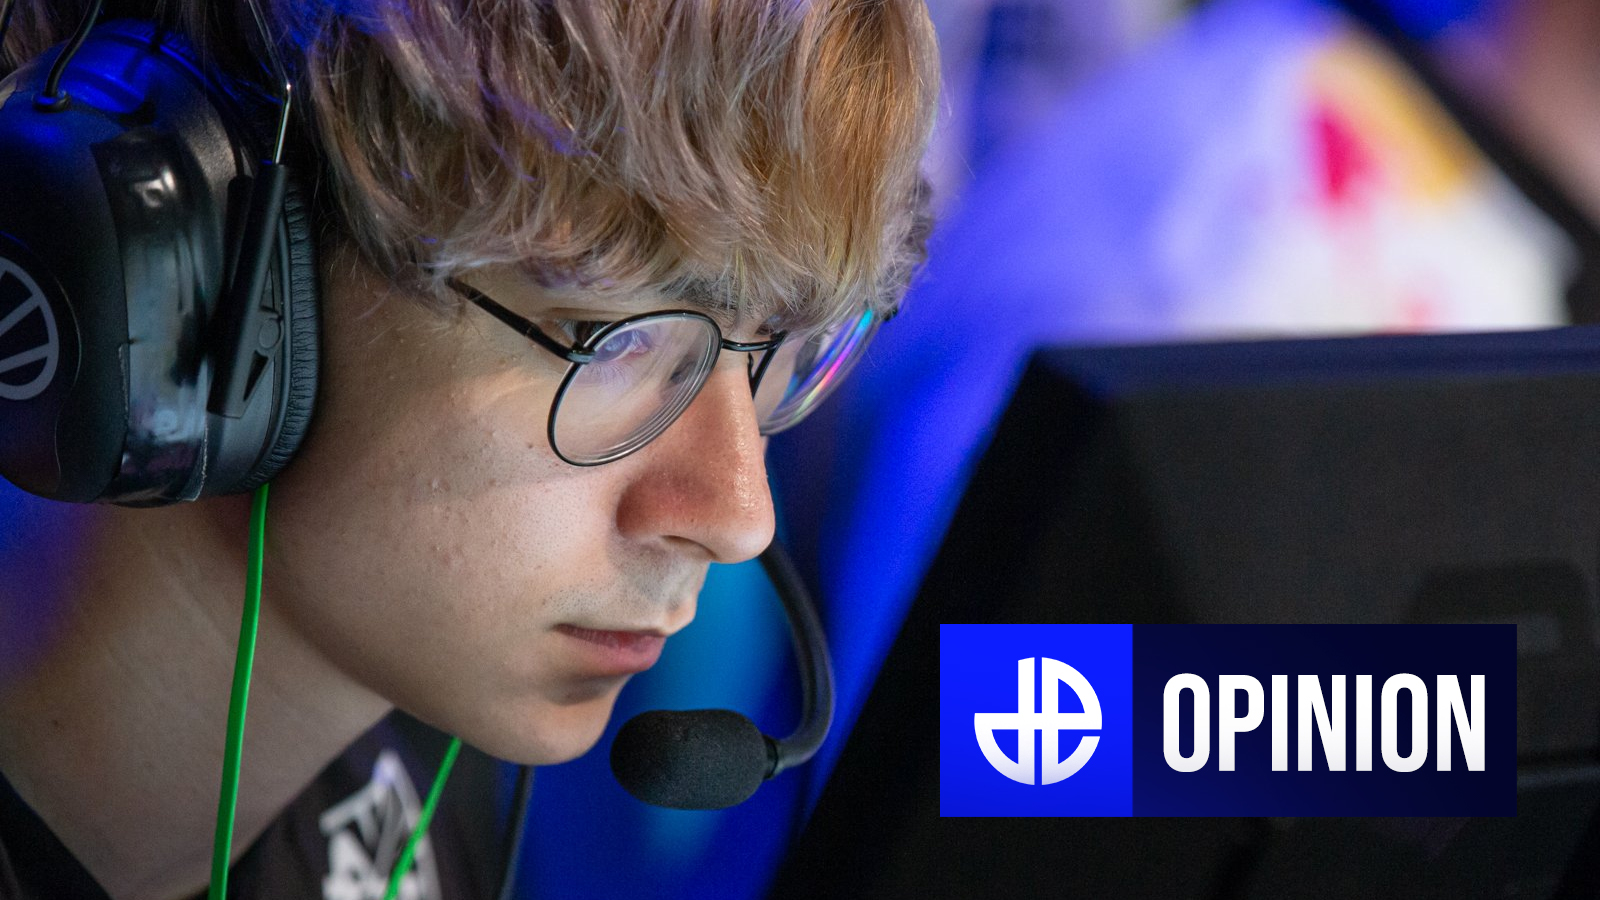 TenZ playing CS:GO for Cloud9